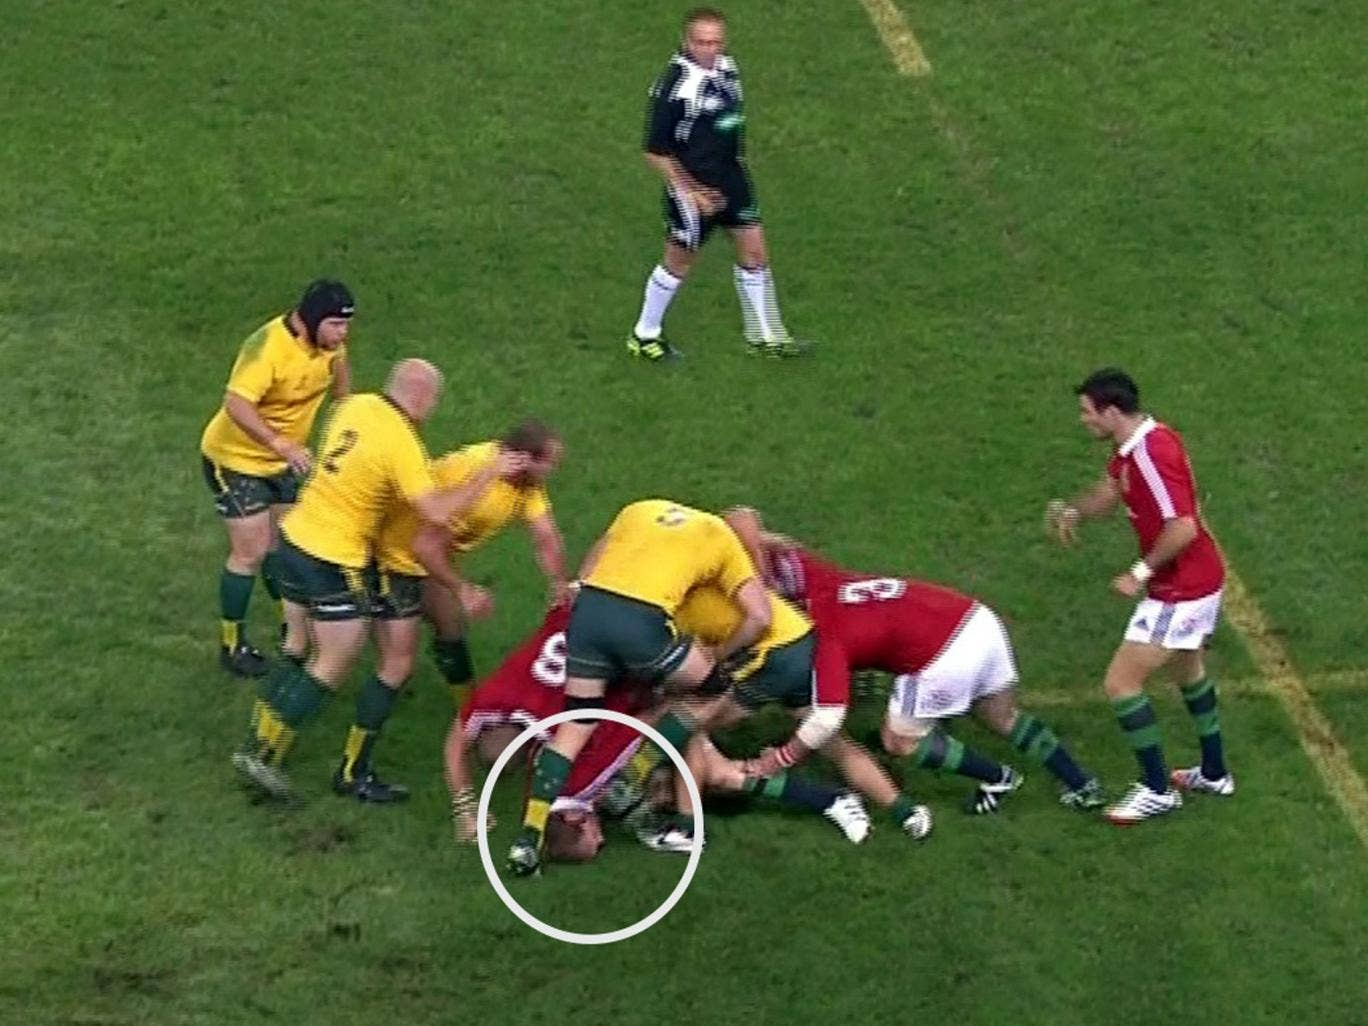 James Horwill's foot was said only to have glanced Alun Wyn Jones